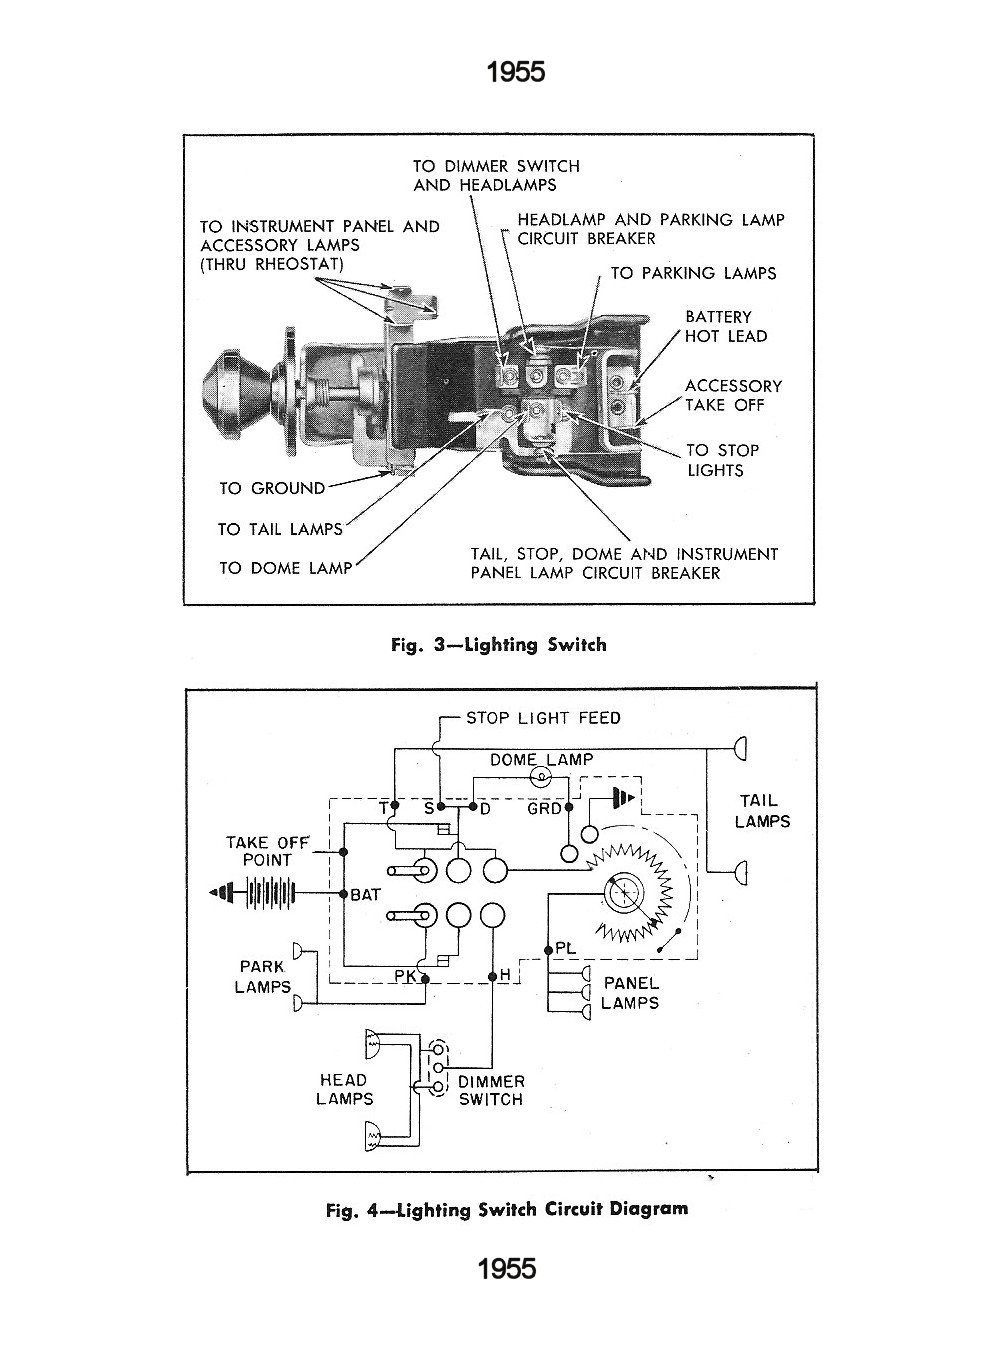 [SCHEMATICS_4ER]  65A3D4 Light Switch Wiring Diagram 1981 C10 | Wiring Library | Light Switch Wiring Diagram 1981 C10 |  | Wiring Library